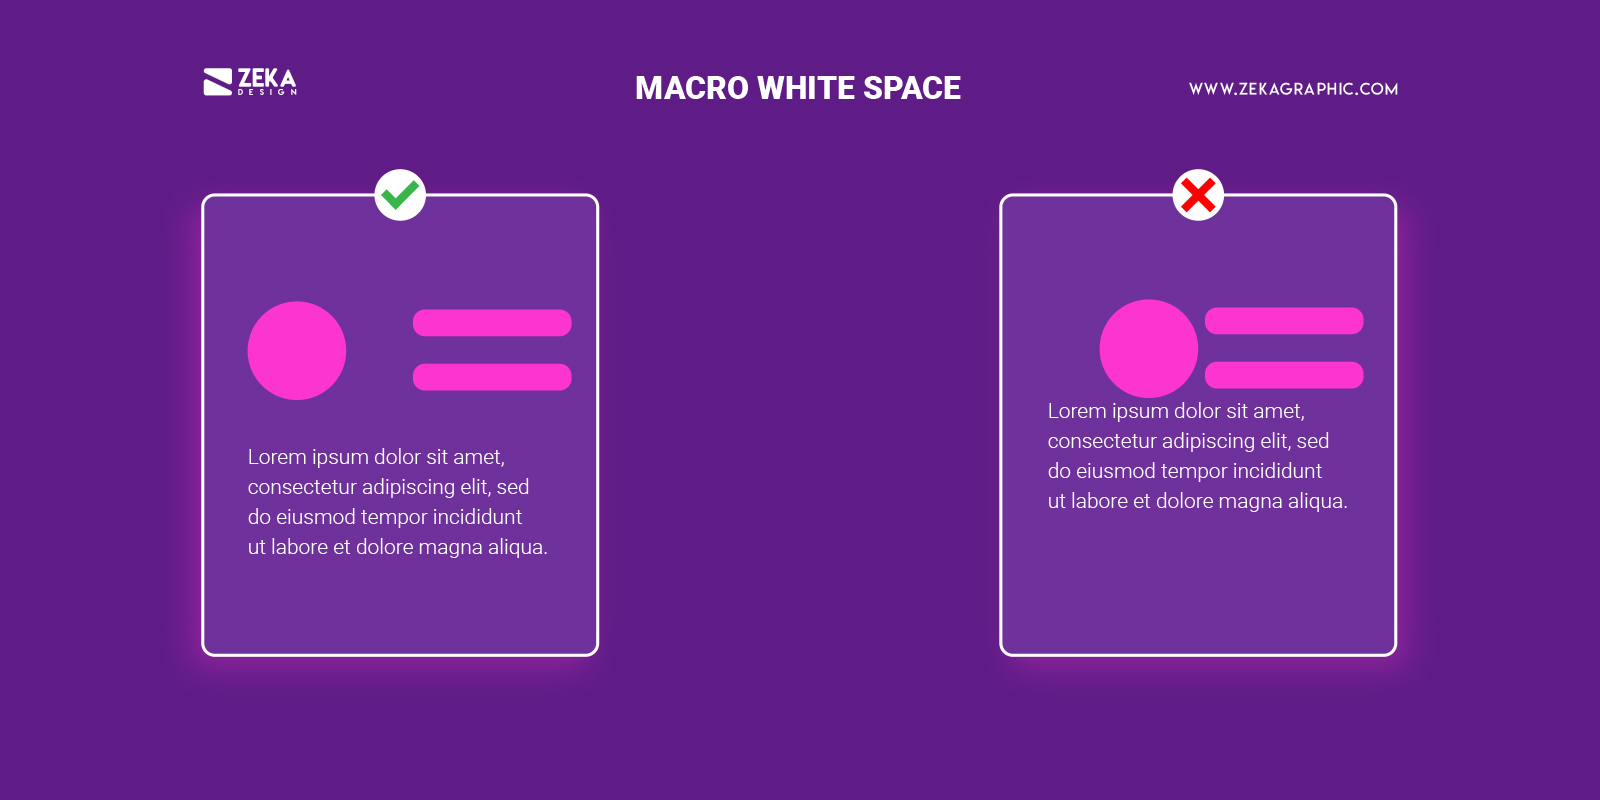 What is Macro White Space in Graphic Design Principles